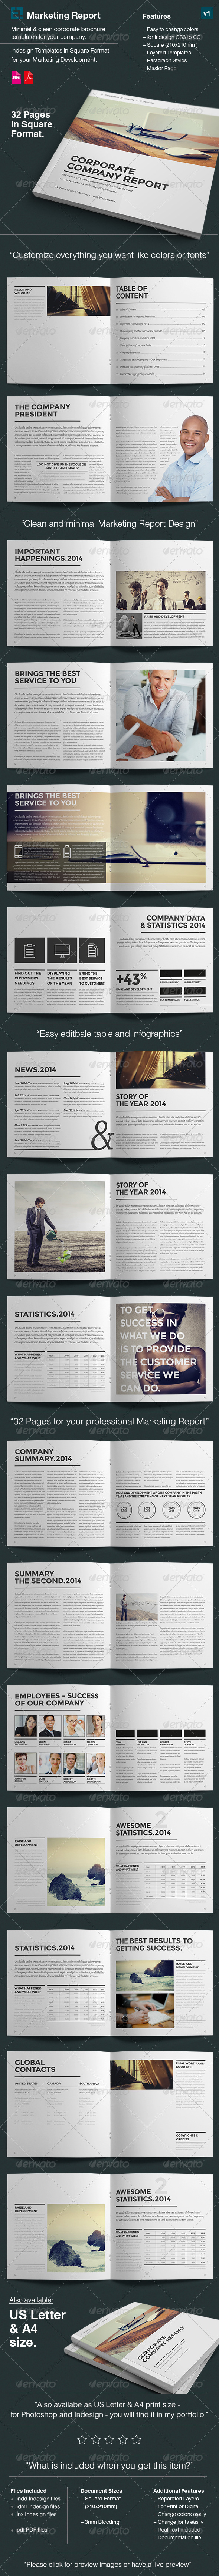 GraphicRiver Design Marketing Brochure Square Size v1 7244323